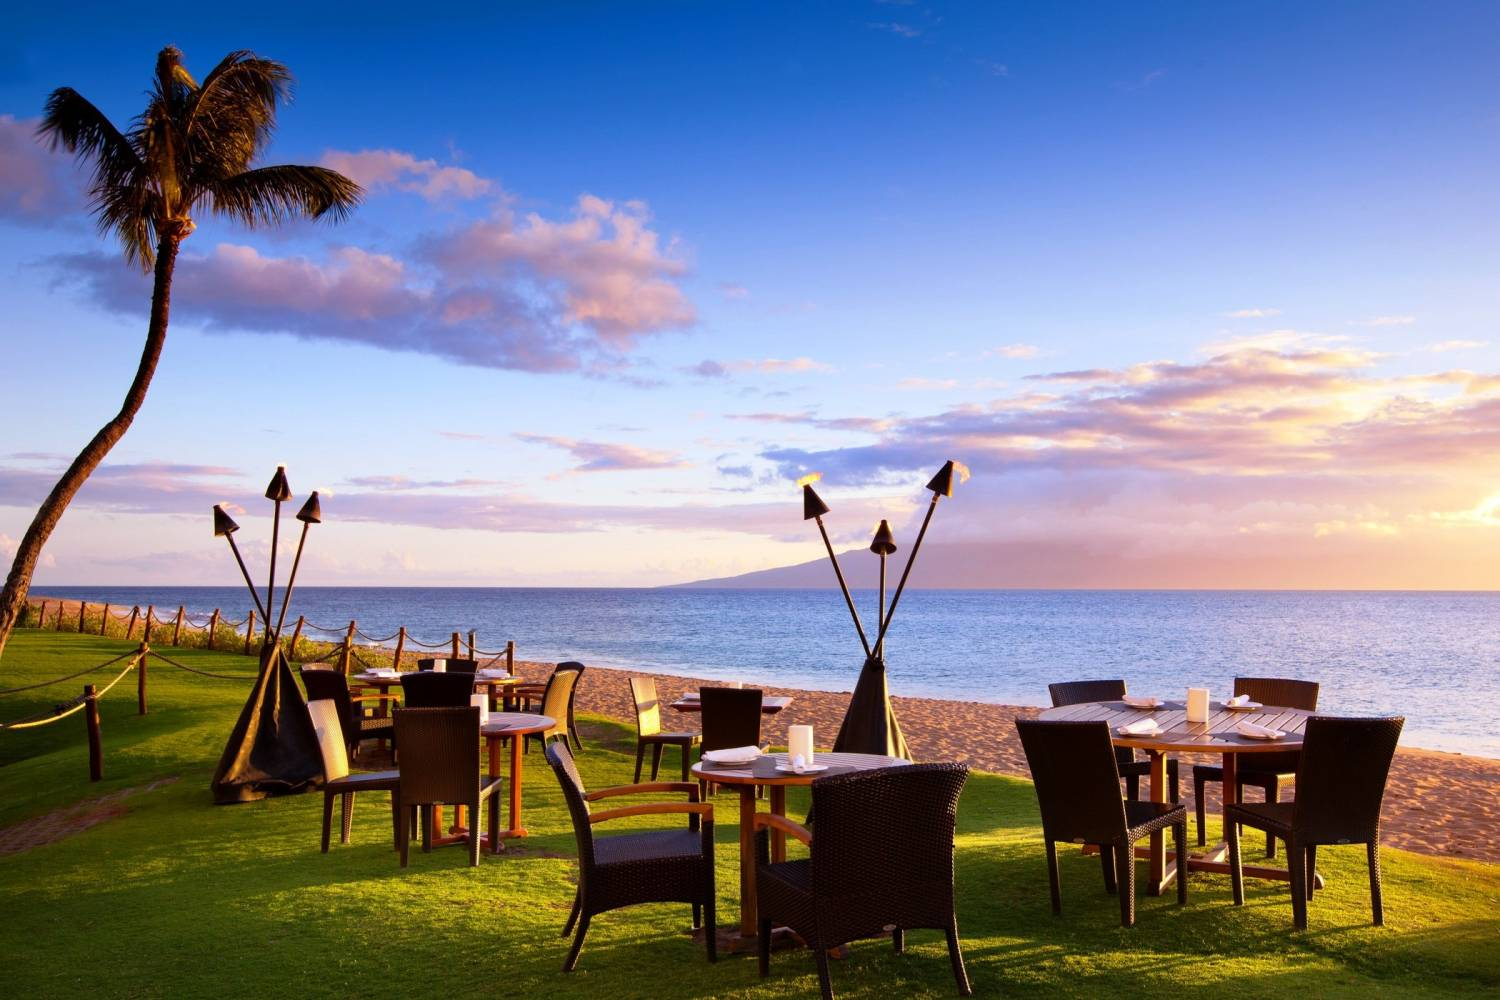 Best private chef selection in Ka'anapali - Take a Chef, header